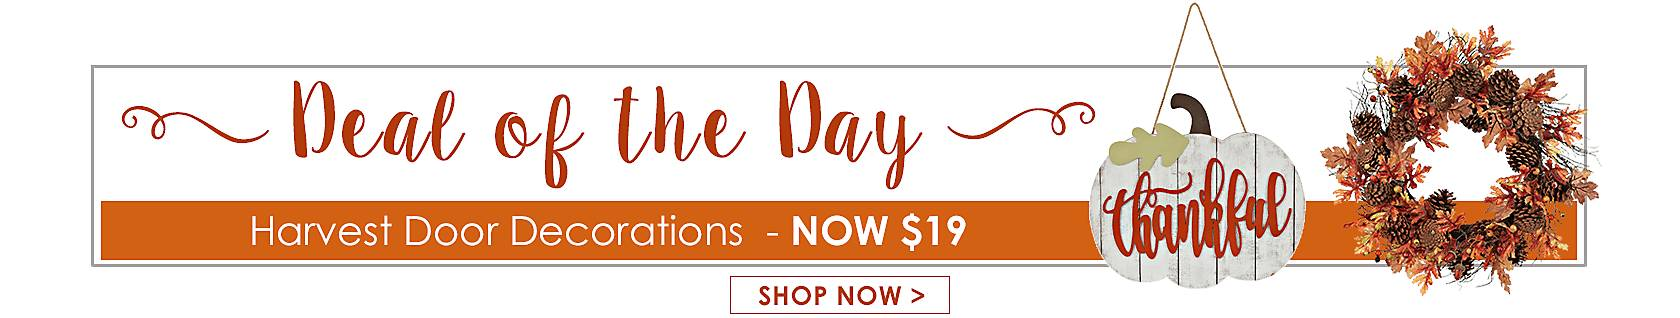 Deal of the Day - Harvest Door Decorations, Now $19 - Shop Now